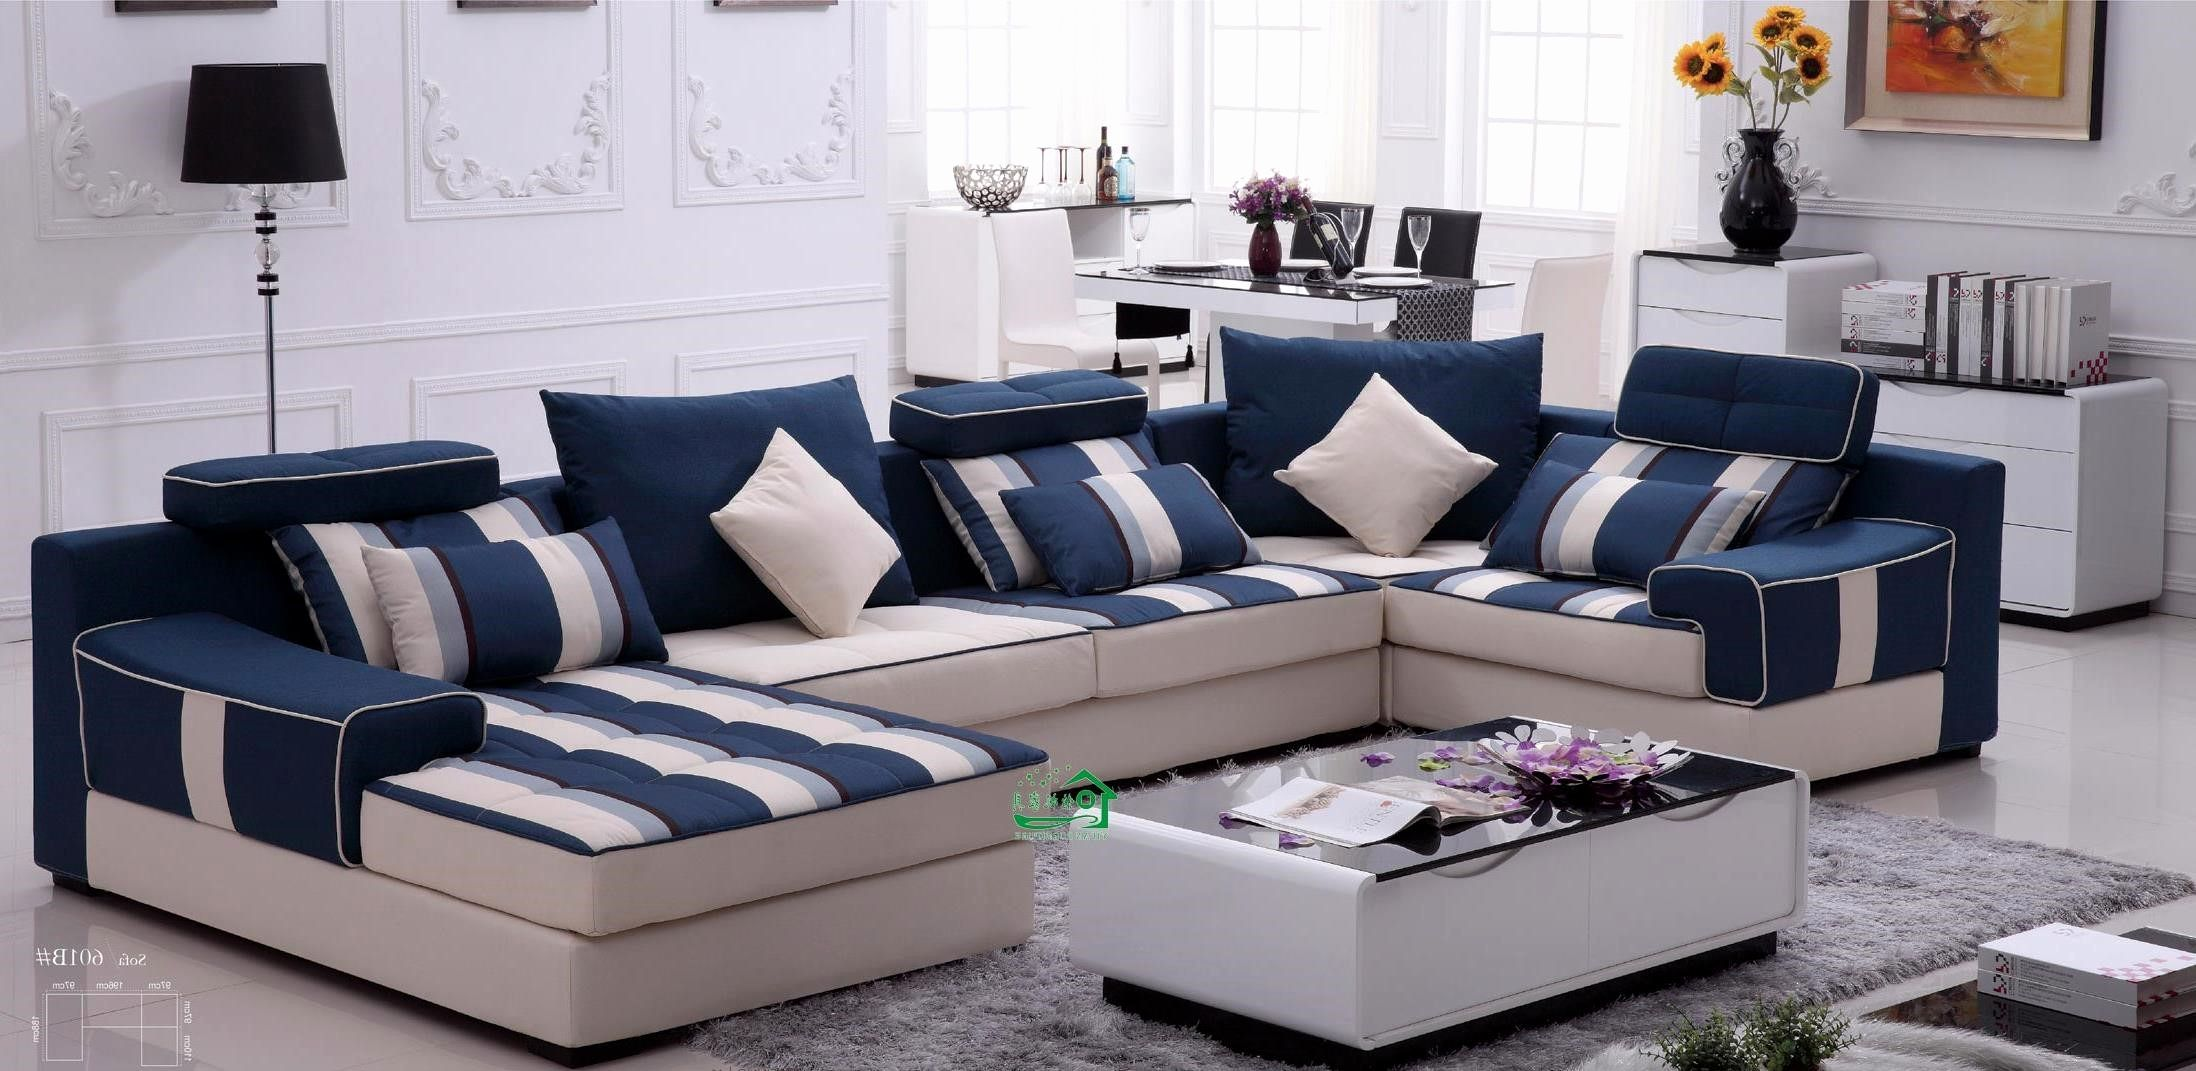 L Sofa Set Photograpy L Sofa Set Elegant 65 Creative Nifty